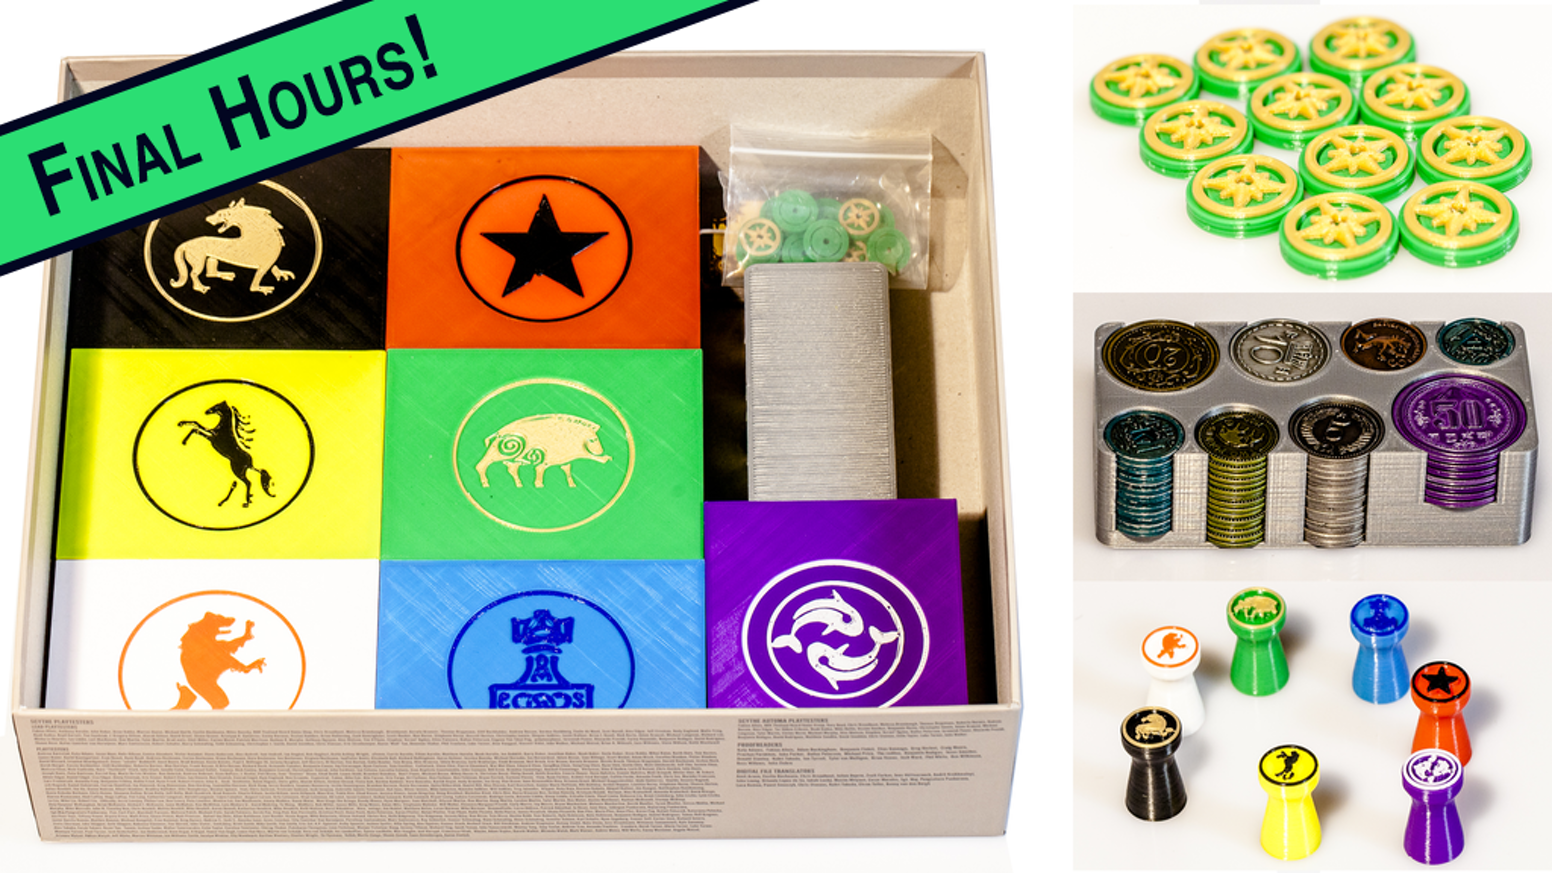 Custom 3D printed unofficial accessories for Scythe board game, including Faction boxes, Action Tokens, Encounter Tokens, & Coin Box.